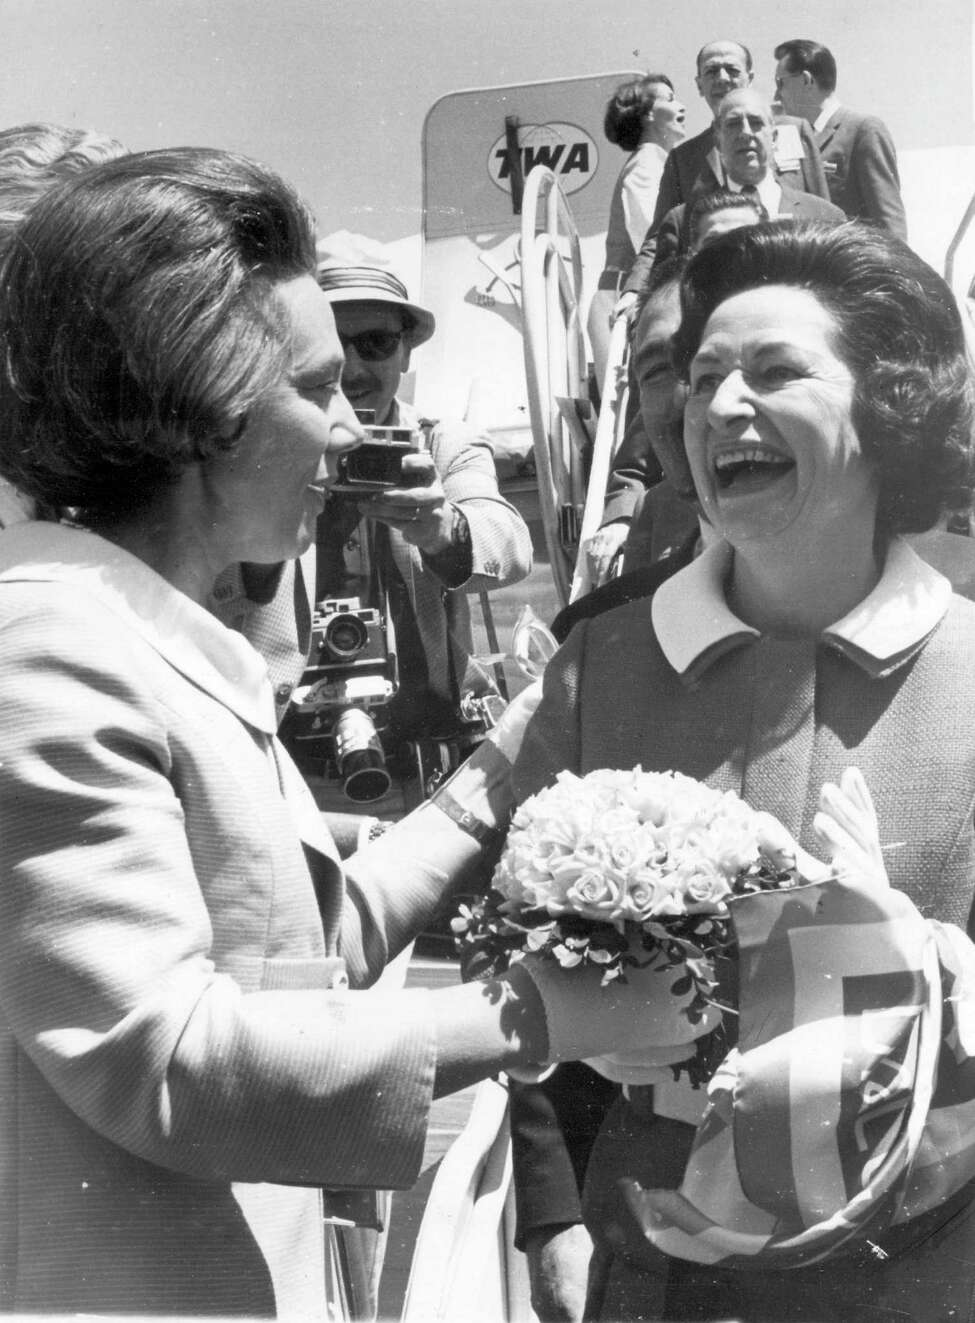 Nellie Connally, wife of Gov. John Connally, welcomes First Lady Lady Bird Johnson to San Antonio on April 5, 1968, to officially open HemisFair.